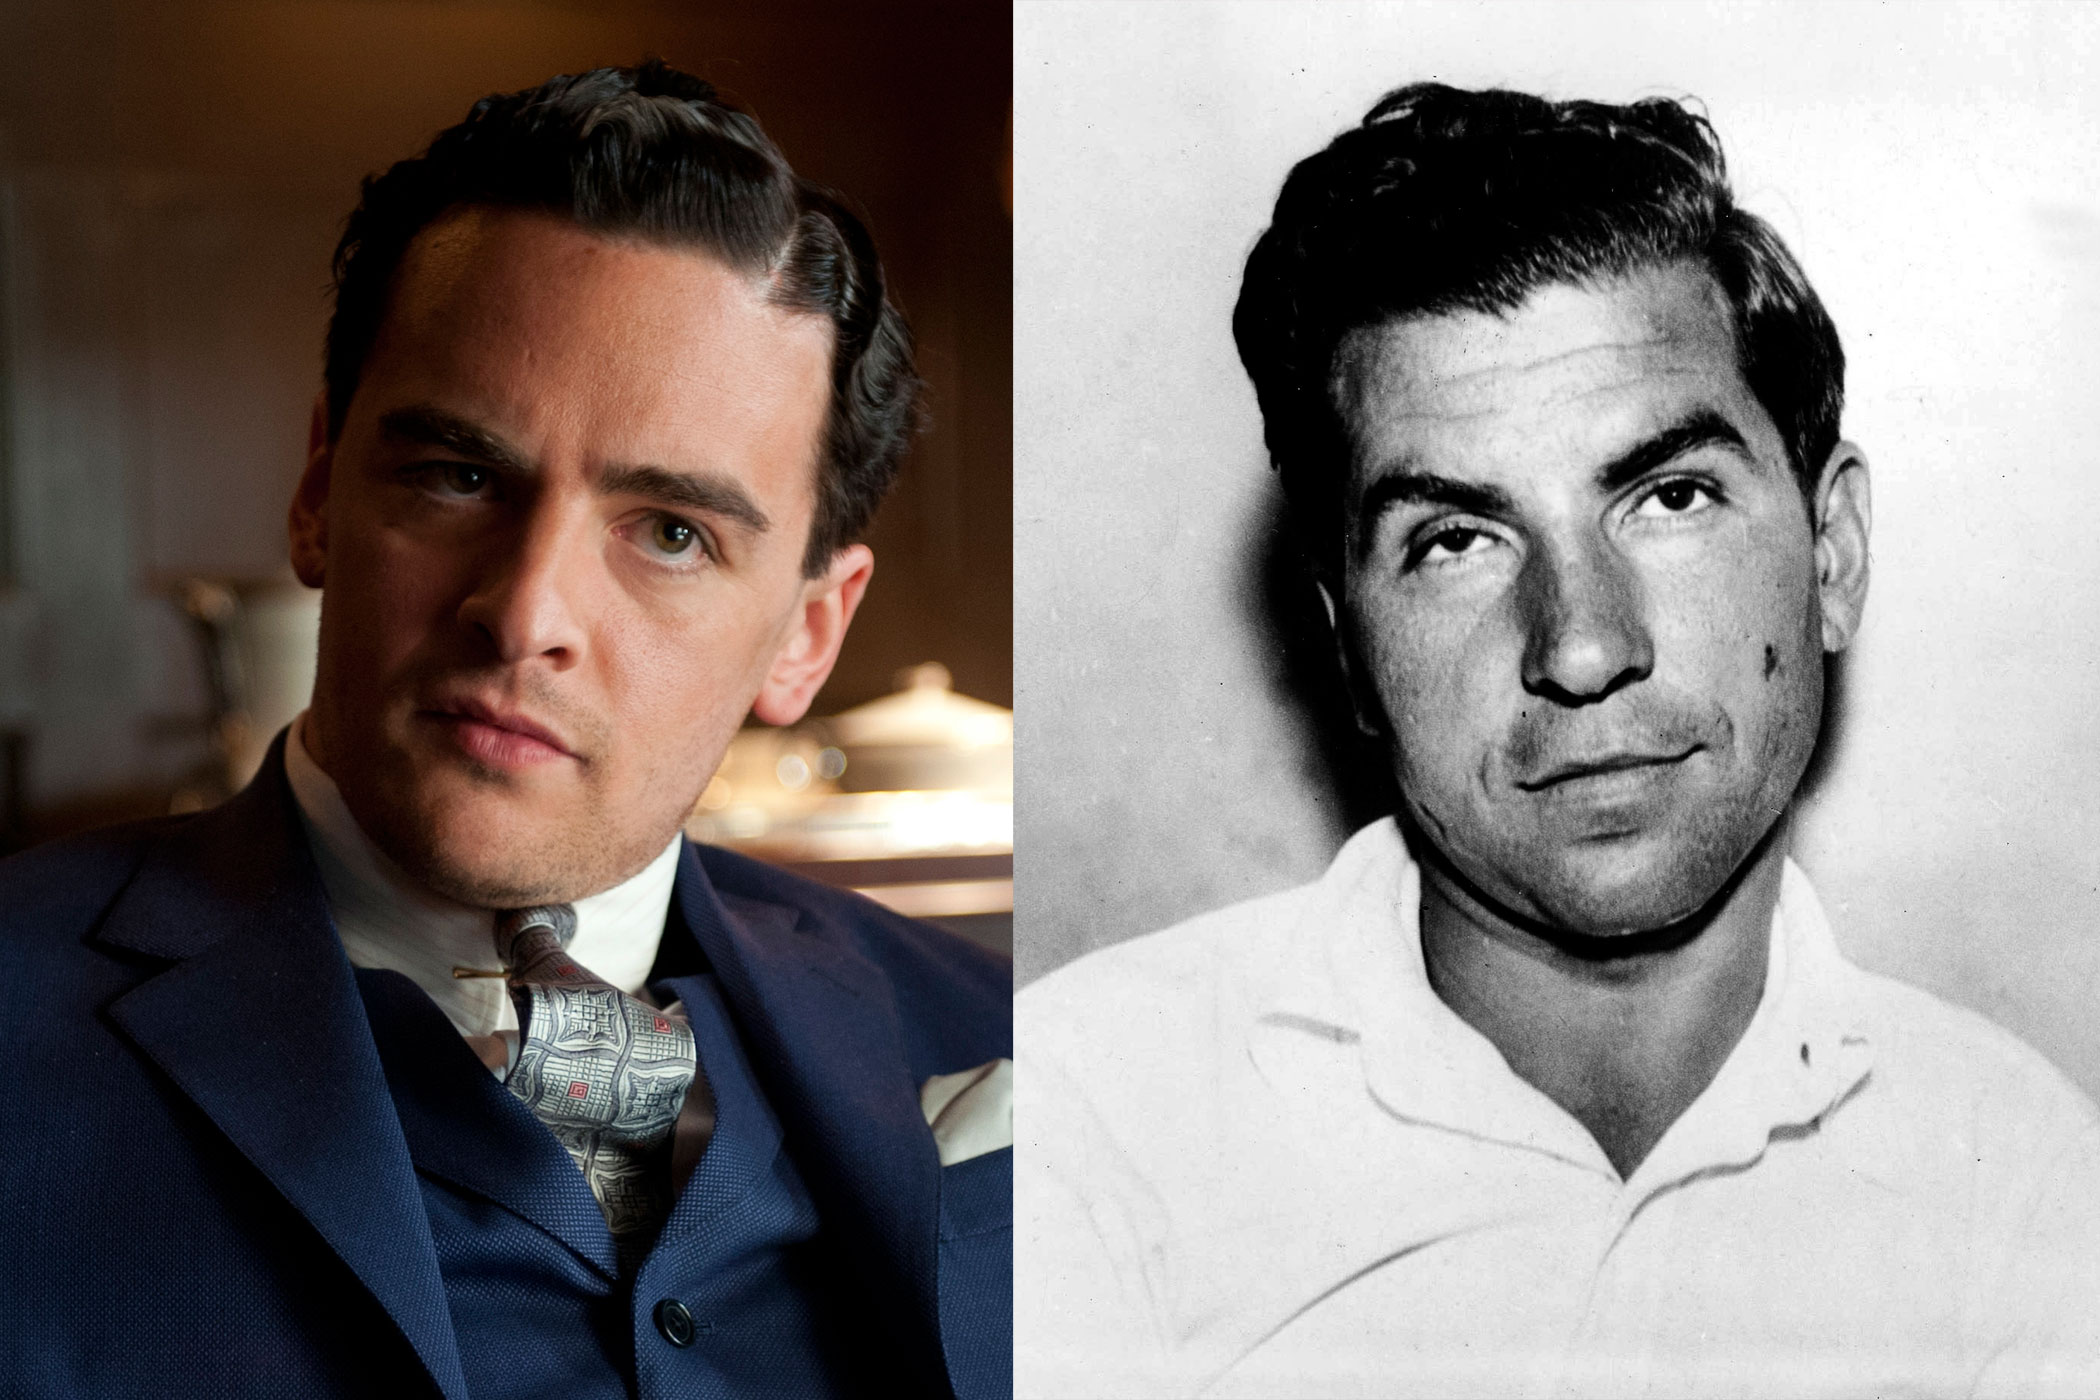 Lucky Luciano:                               Charles  Lucky  Luciano is often considered the father of modern day organized crime in the U.S., having been instrumental in setting up the National Crime Syndicate with Meyer Lansky. Vincent Piazza's Boardwalk version seems destined for infamy, just like his real-life counterpart.